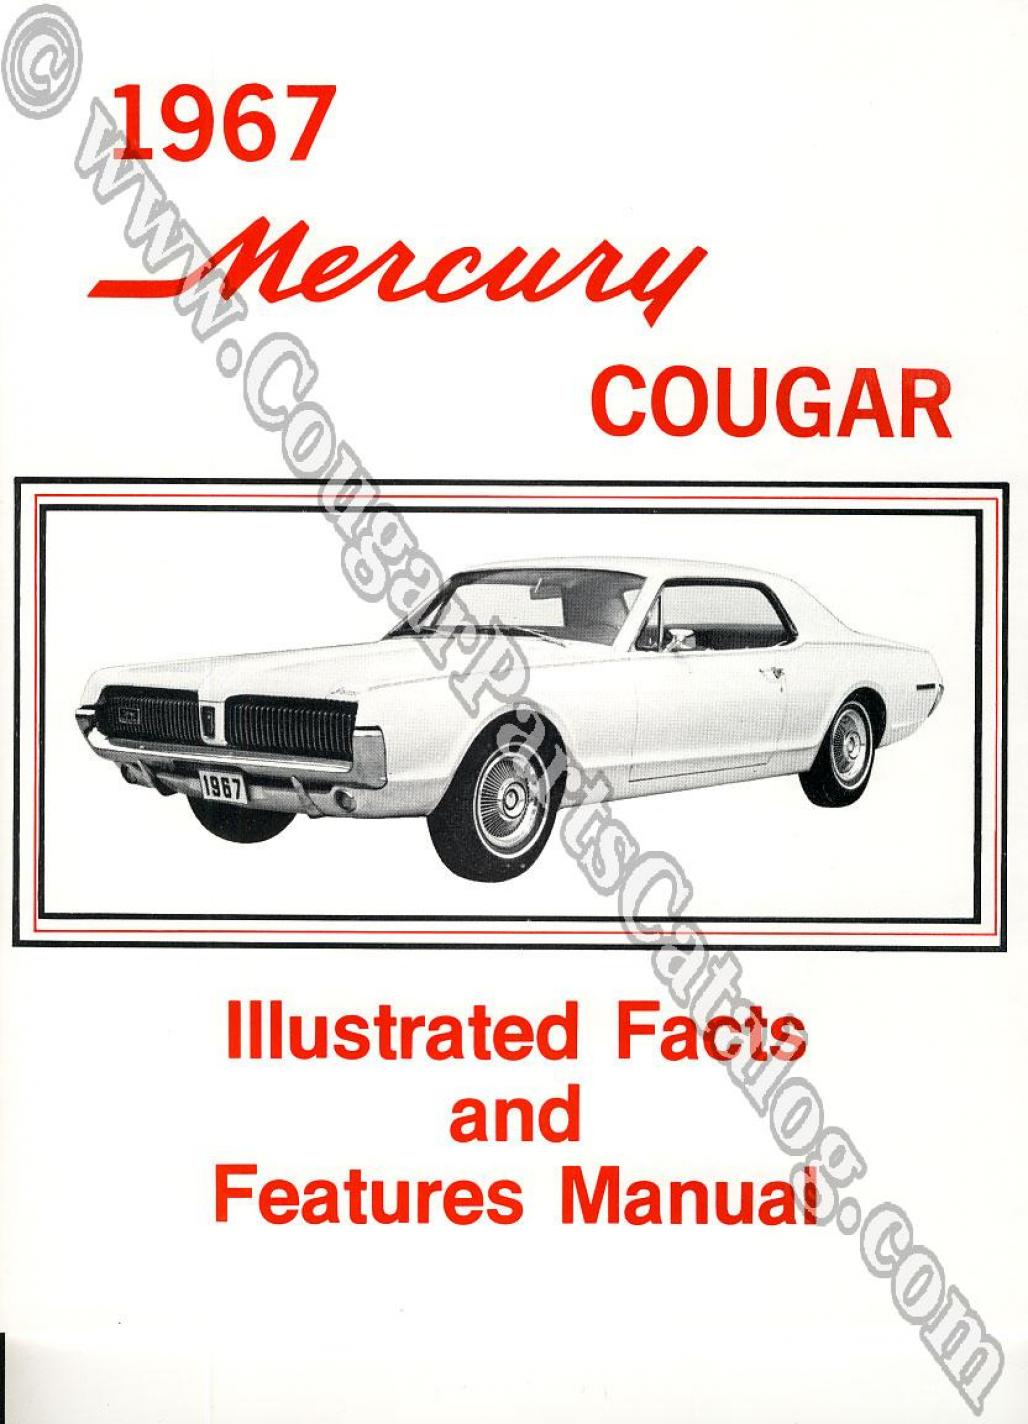 Illustrated Facts and Features Manual - Repro ~ 1967 Mercury Cougar - 25957